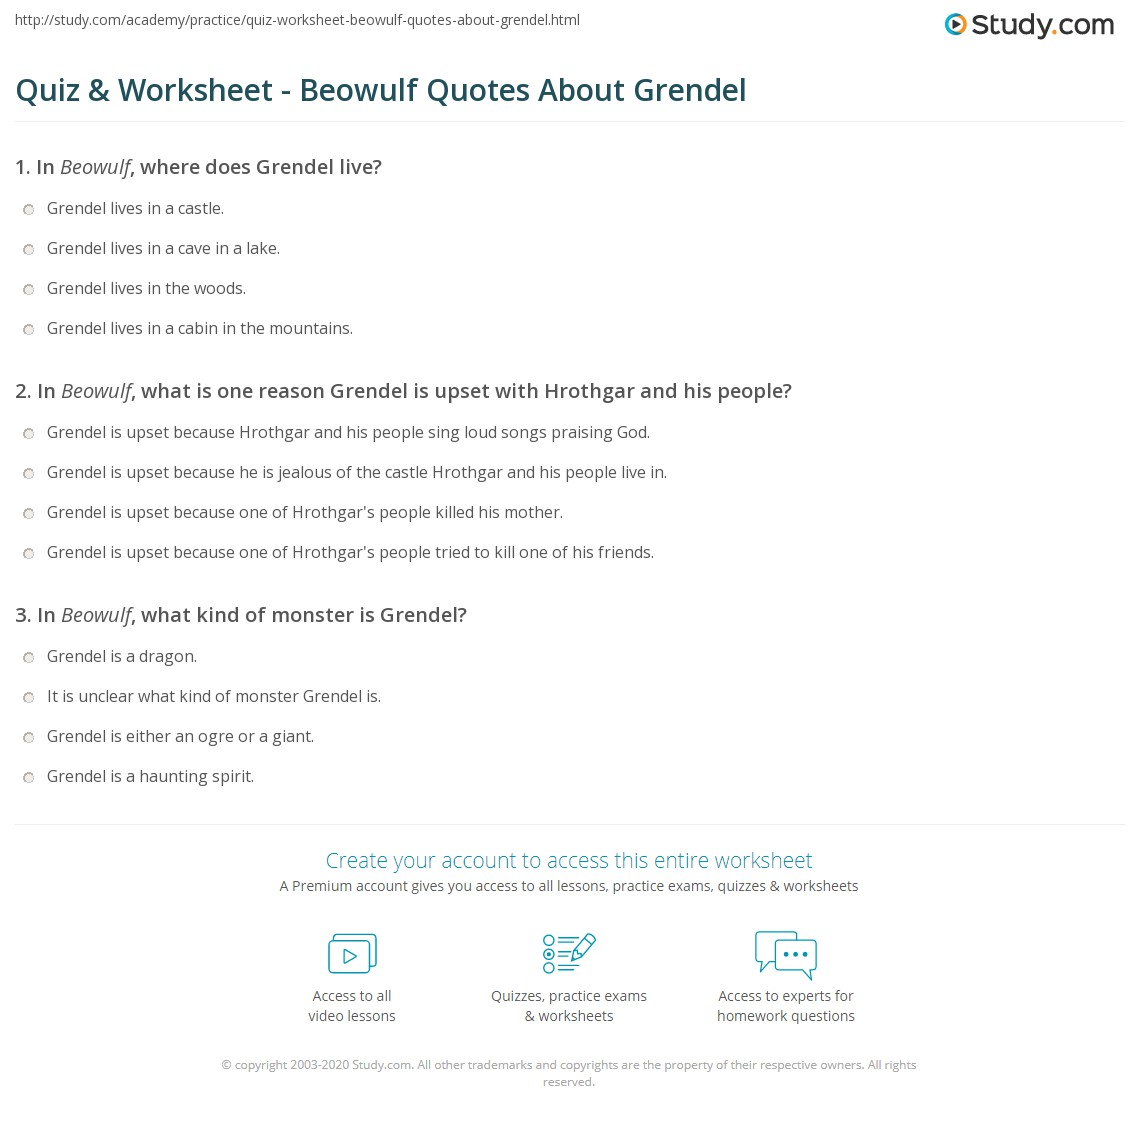 quiz worksheet beowulf quotes about grendel com print beowulf quotes about grendel examples analysis worksheet